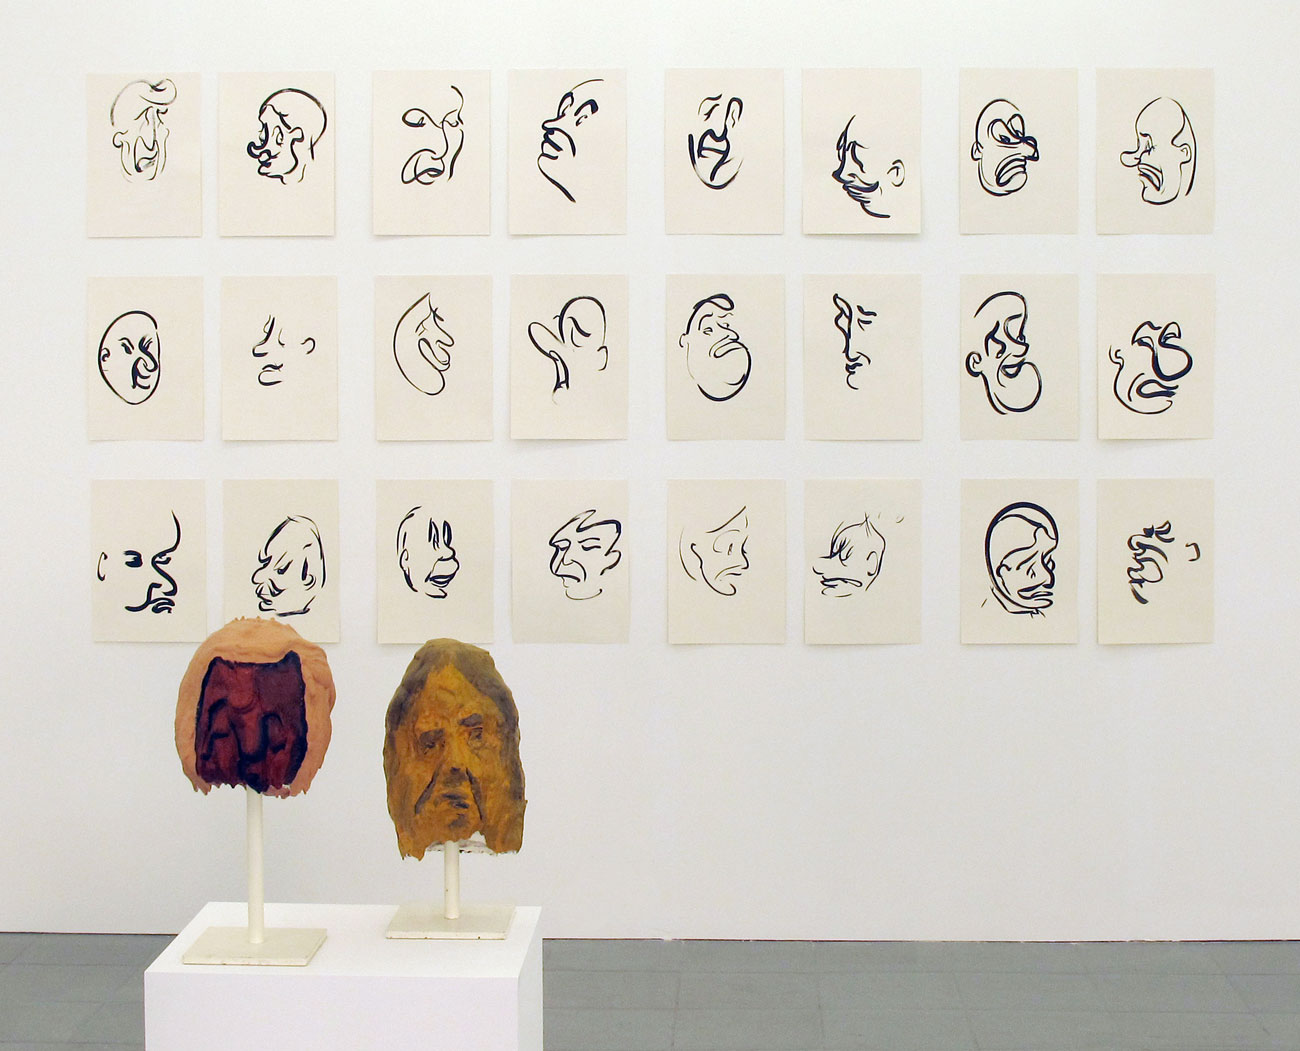 sam-porritt-Untitled-(Heads)-Untitled-(Faces)